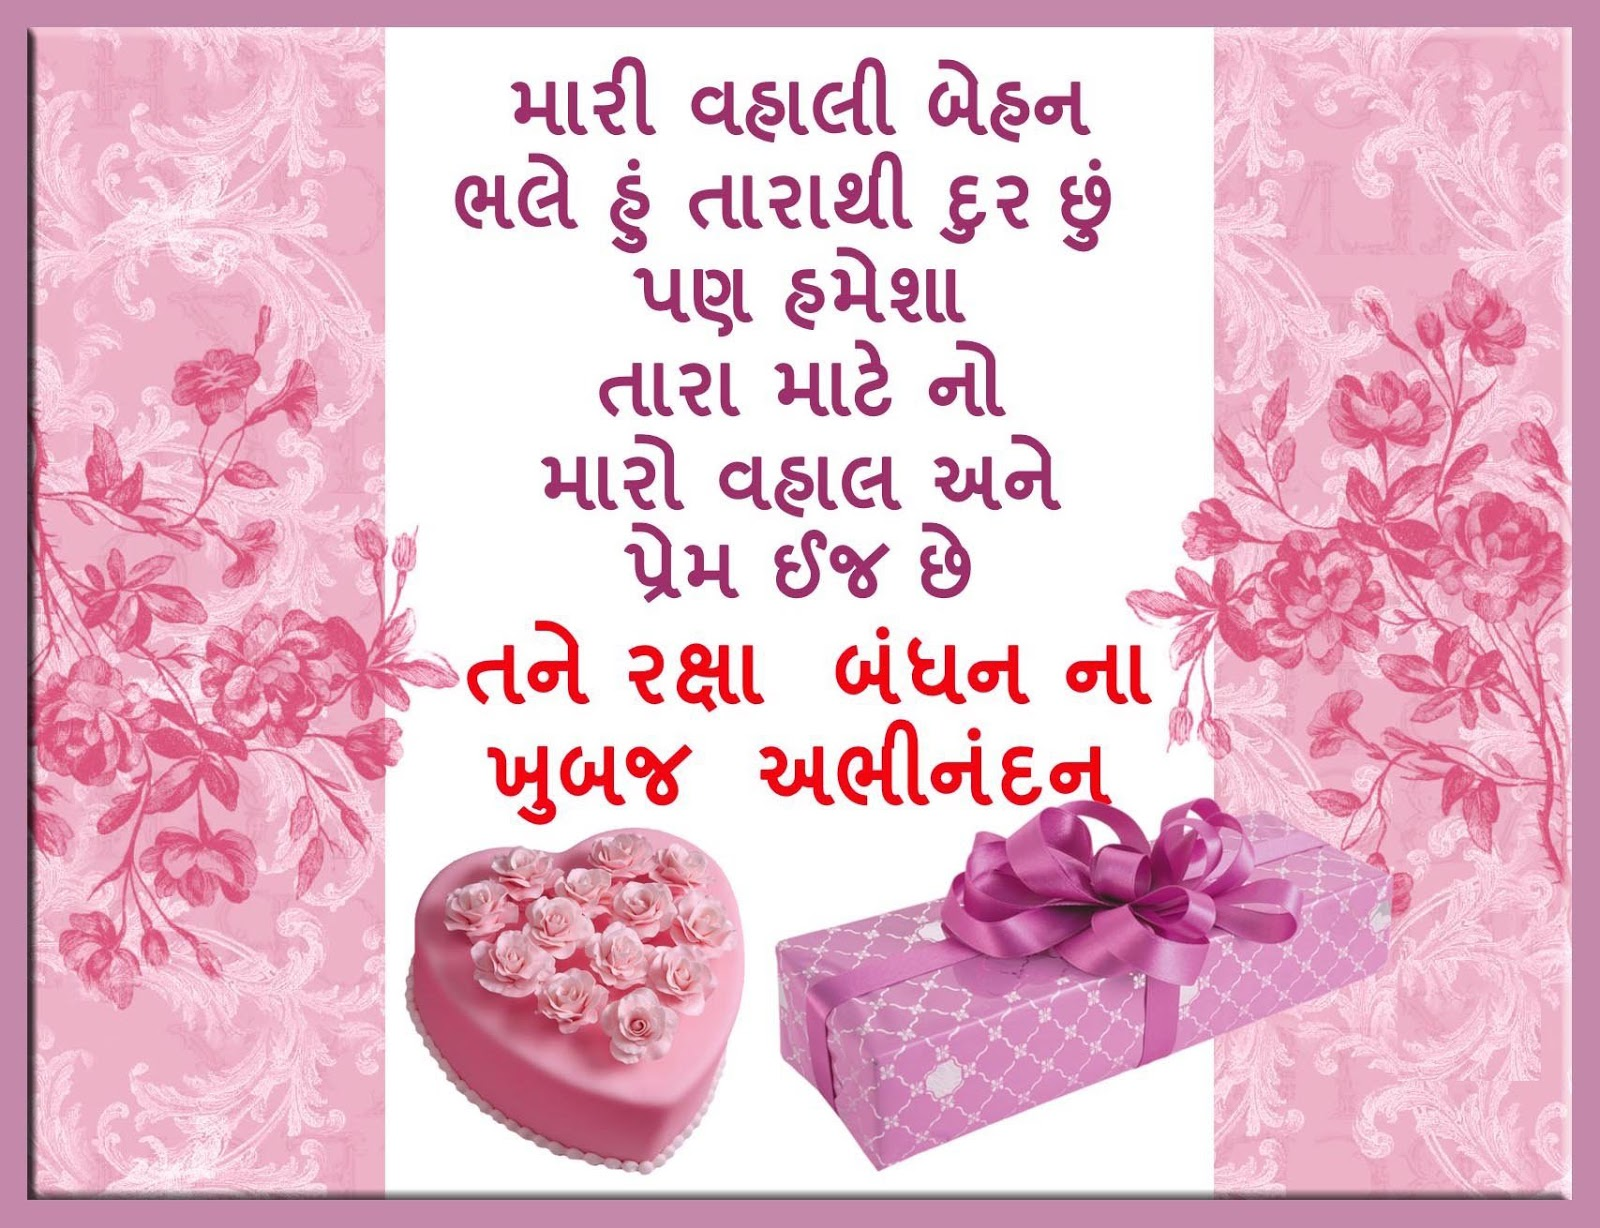 Happy Raksha Bandhan 2018 Wishes And Messages In Gujarati Whatsapp